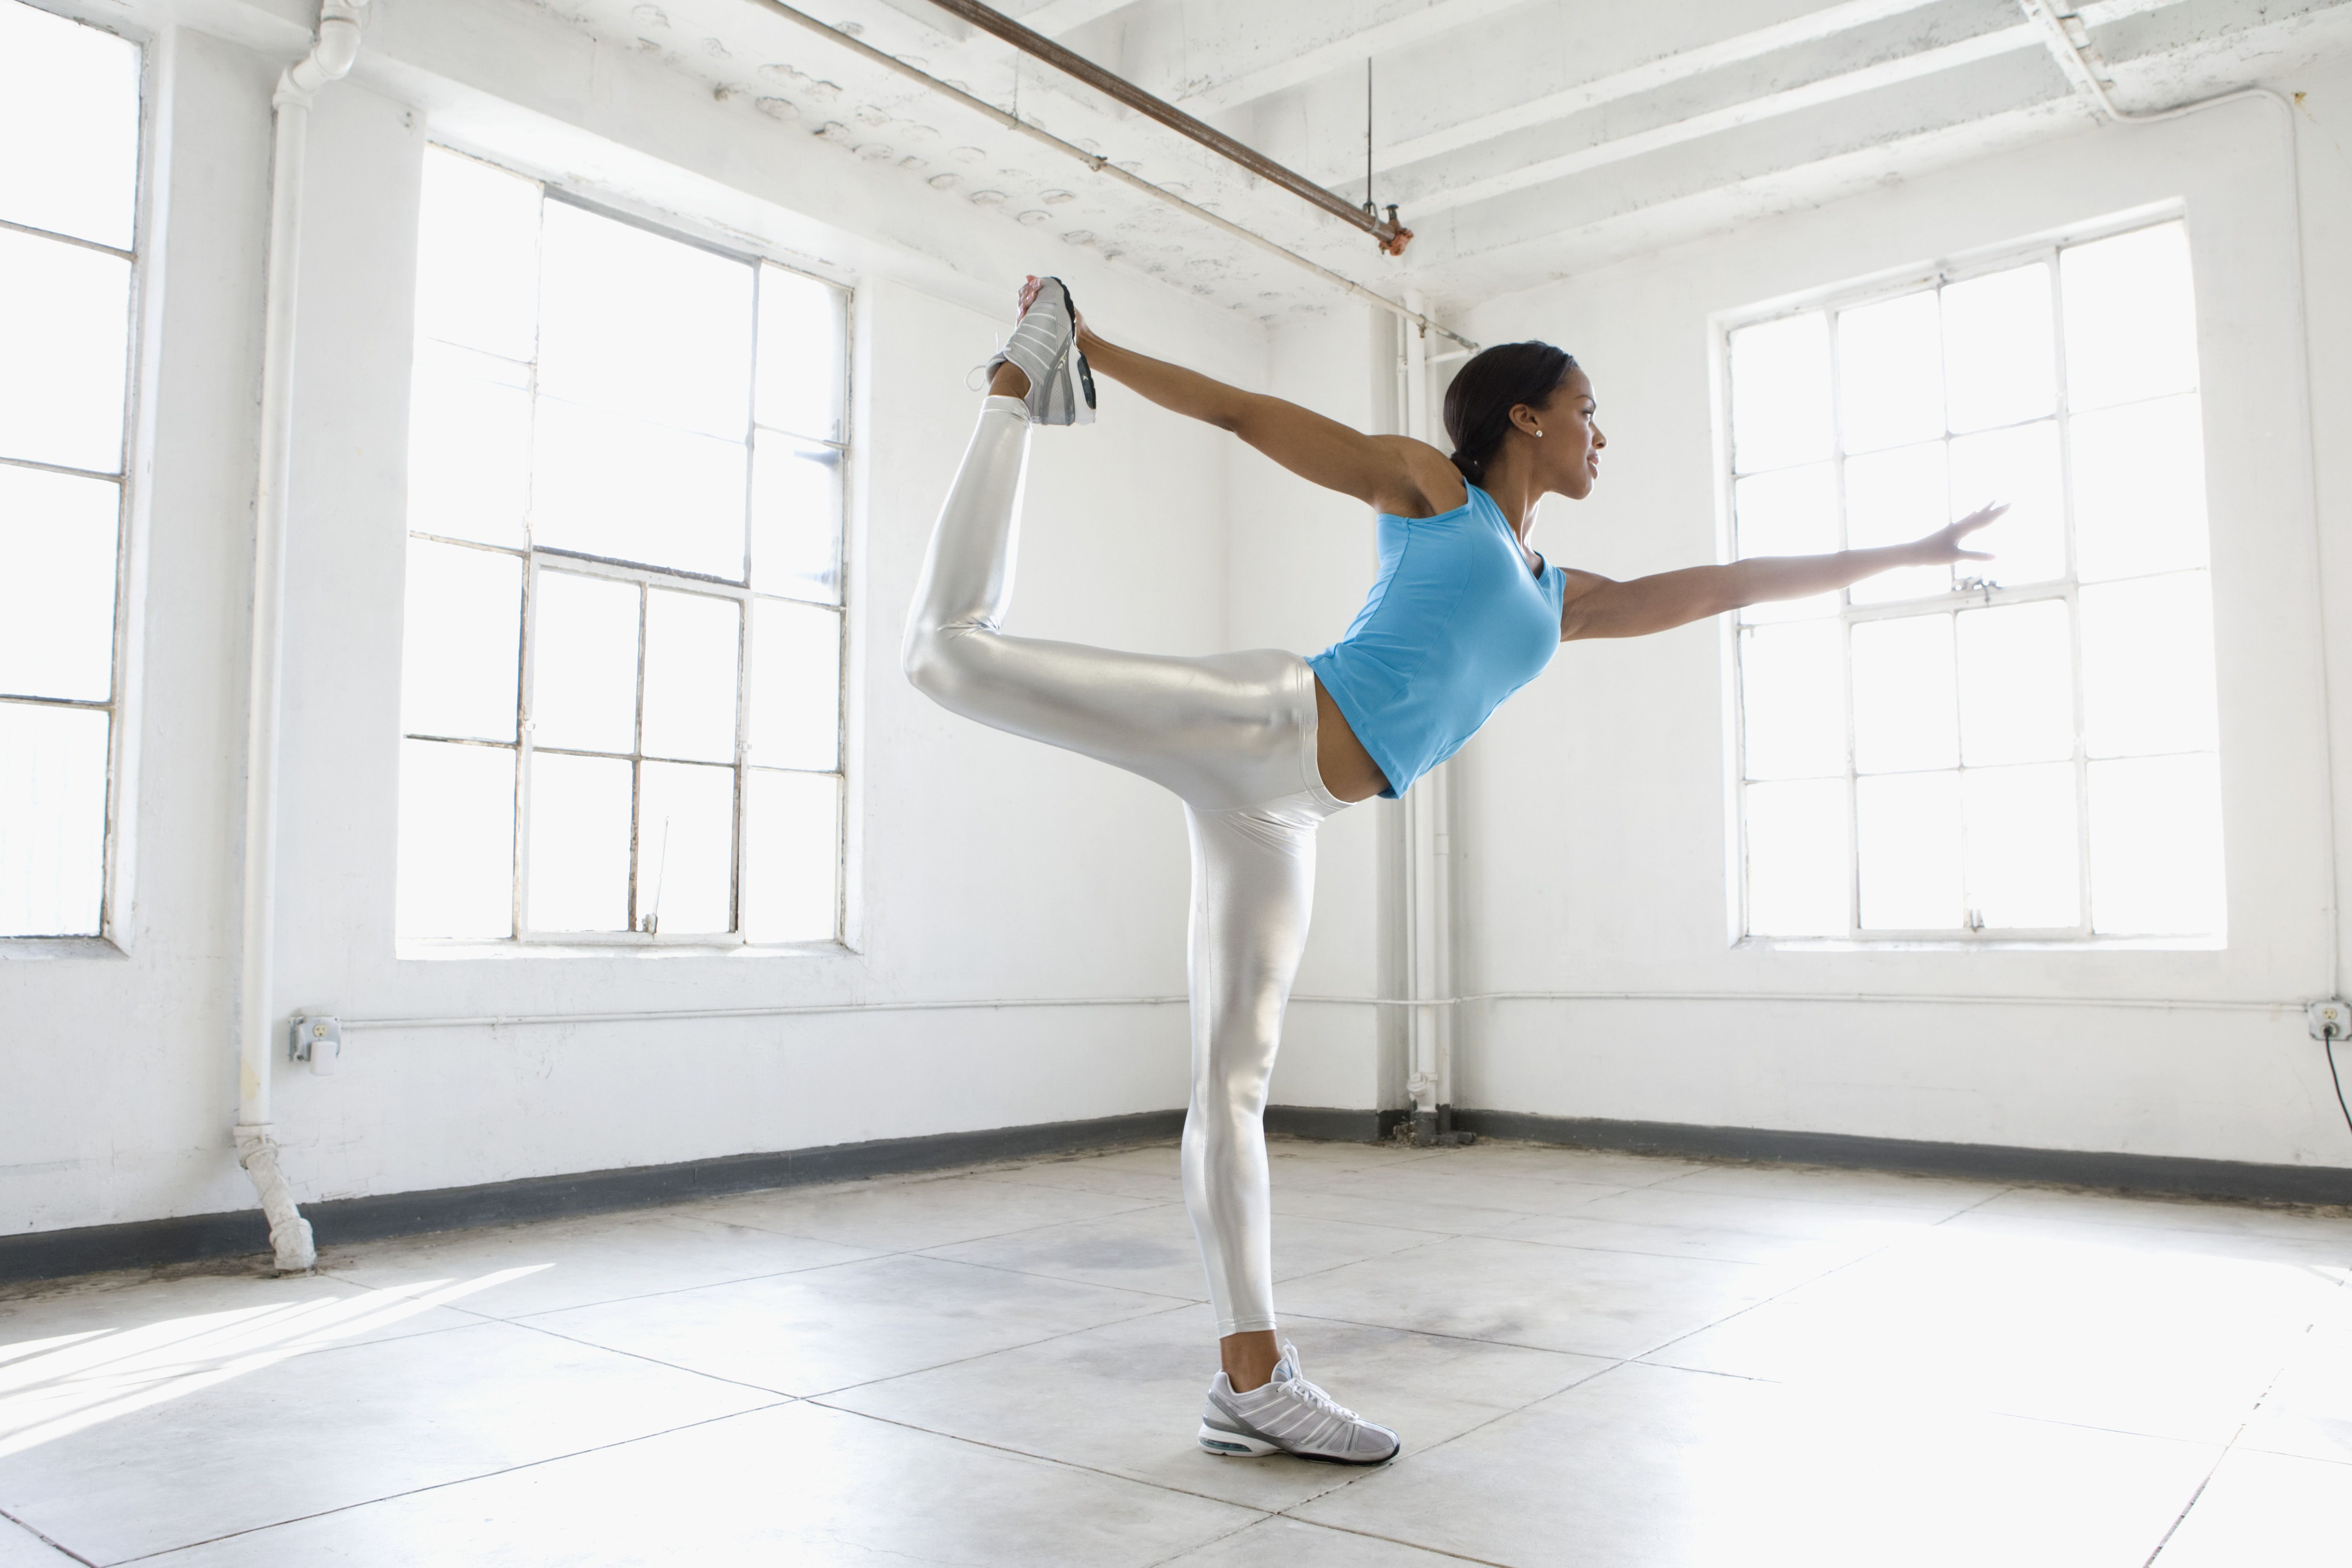 15 Hip-Opening Yoga Poses to Help Stretch and Strengthen Your Hips